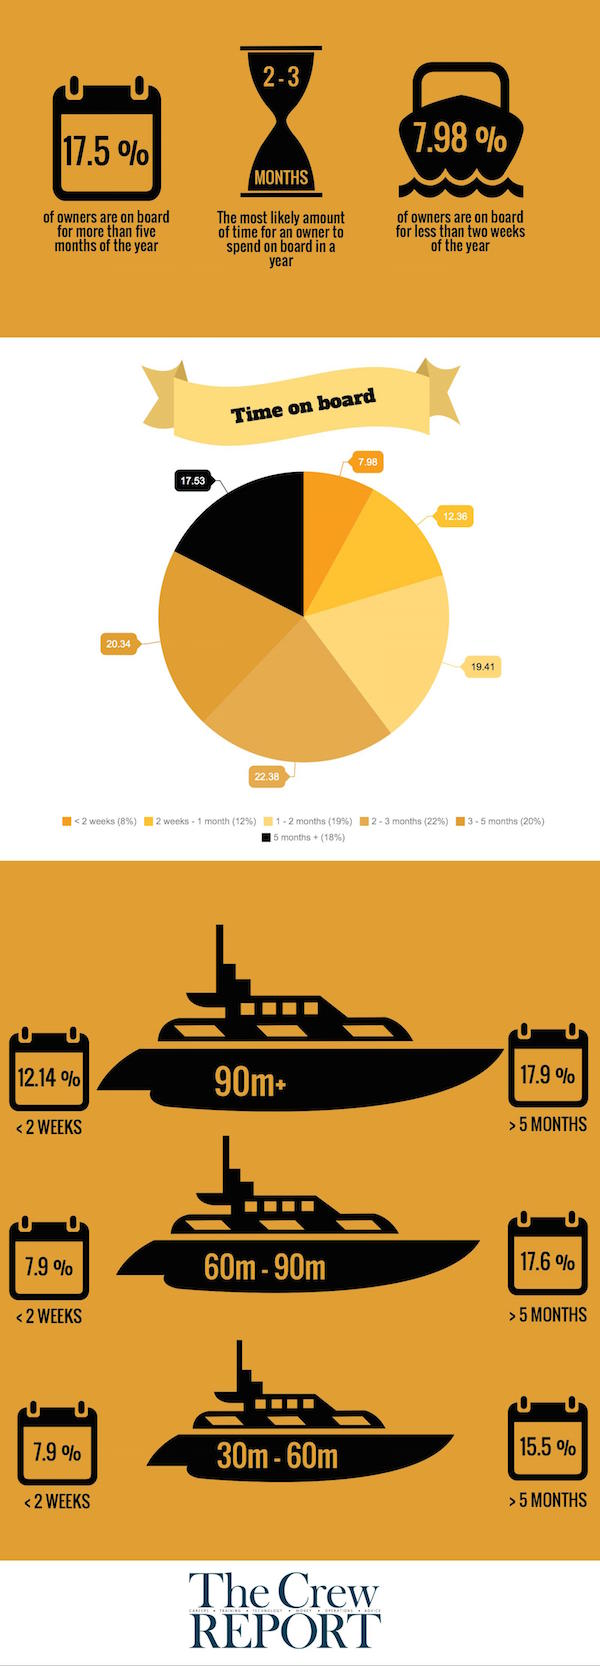 Image for article Do owners spend more time on board than we think?